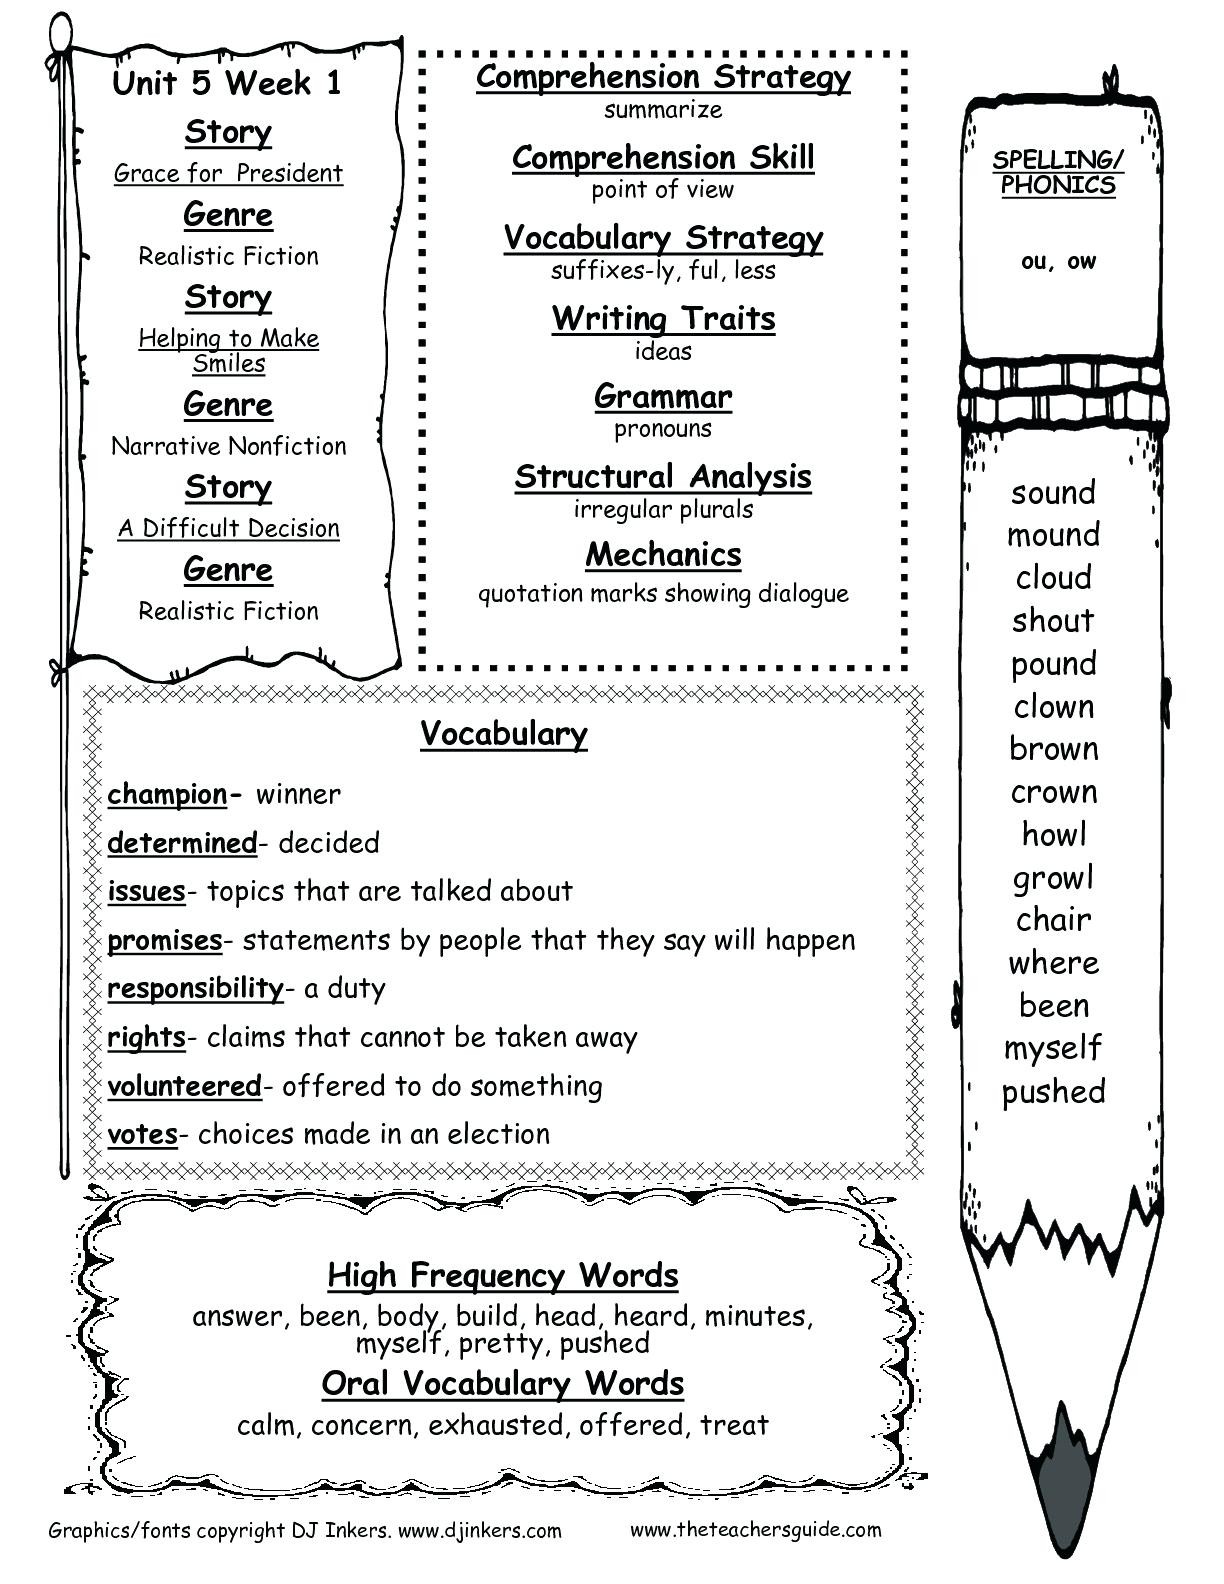 Summary Worksheets 2nd Grade Summarizing Worksheets 2nd Grade Free Printable